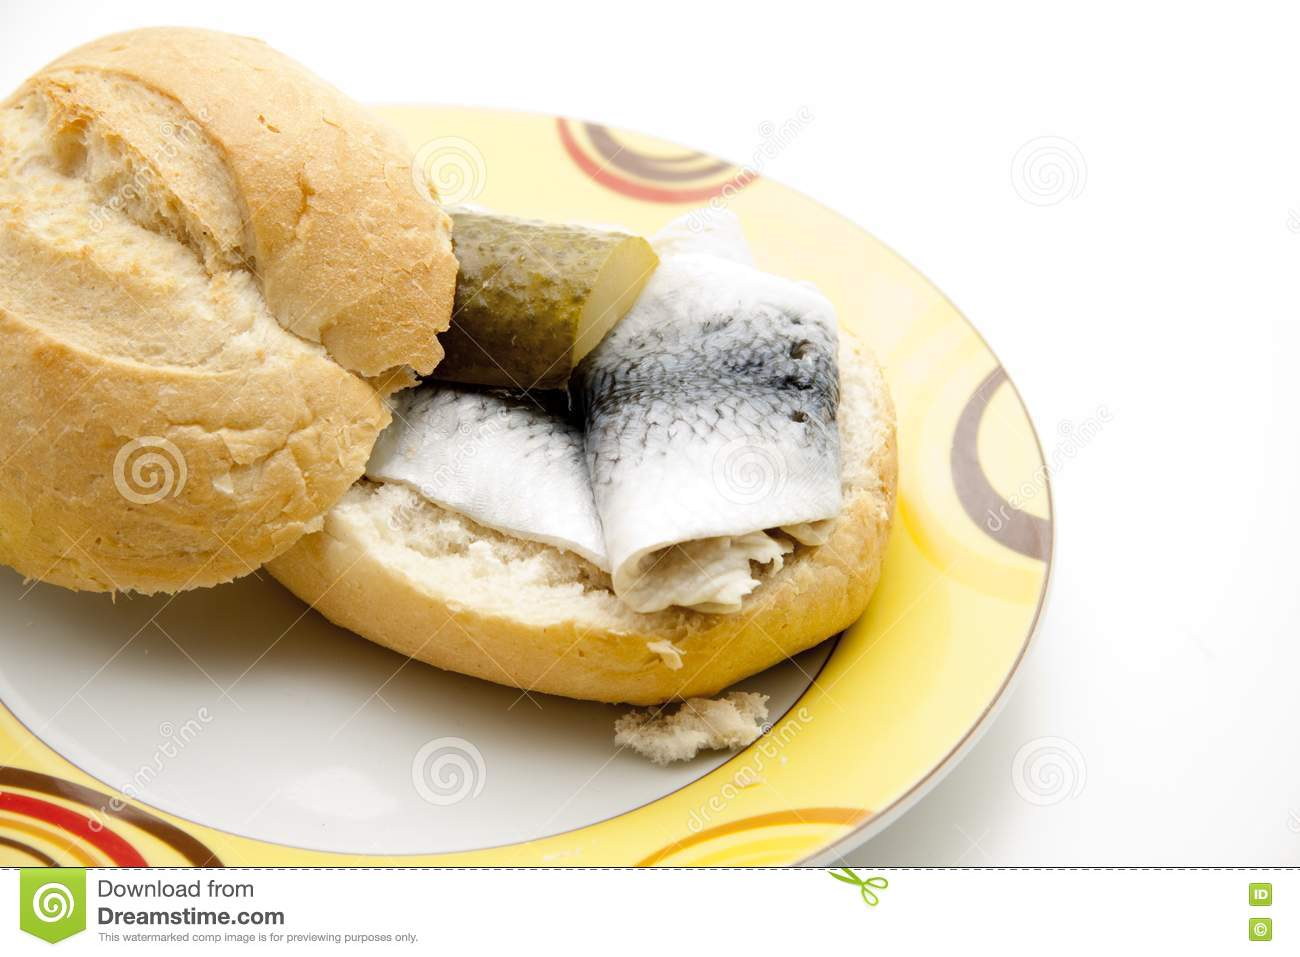 rolled pickled herring with roll royalty free stock photos image 16419668. Black Bedroom Furniture Sets. Home Design Ideas